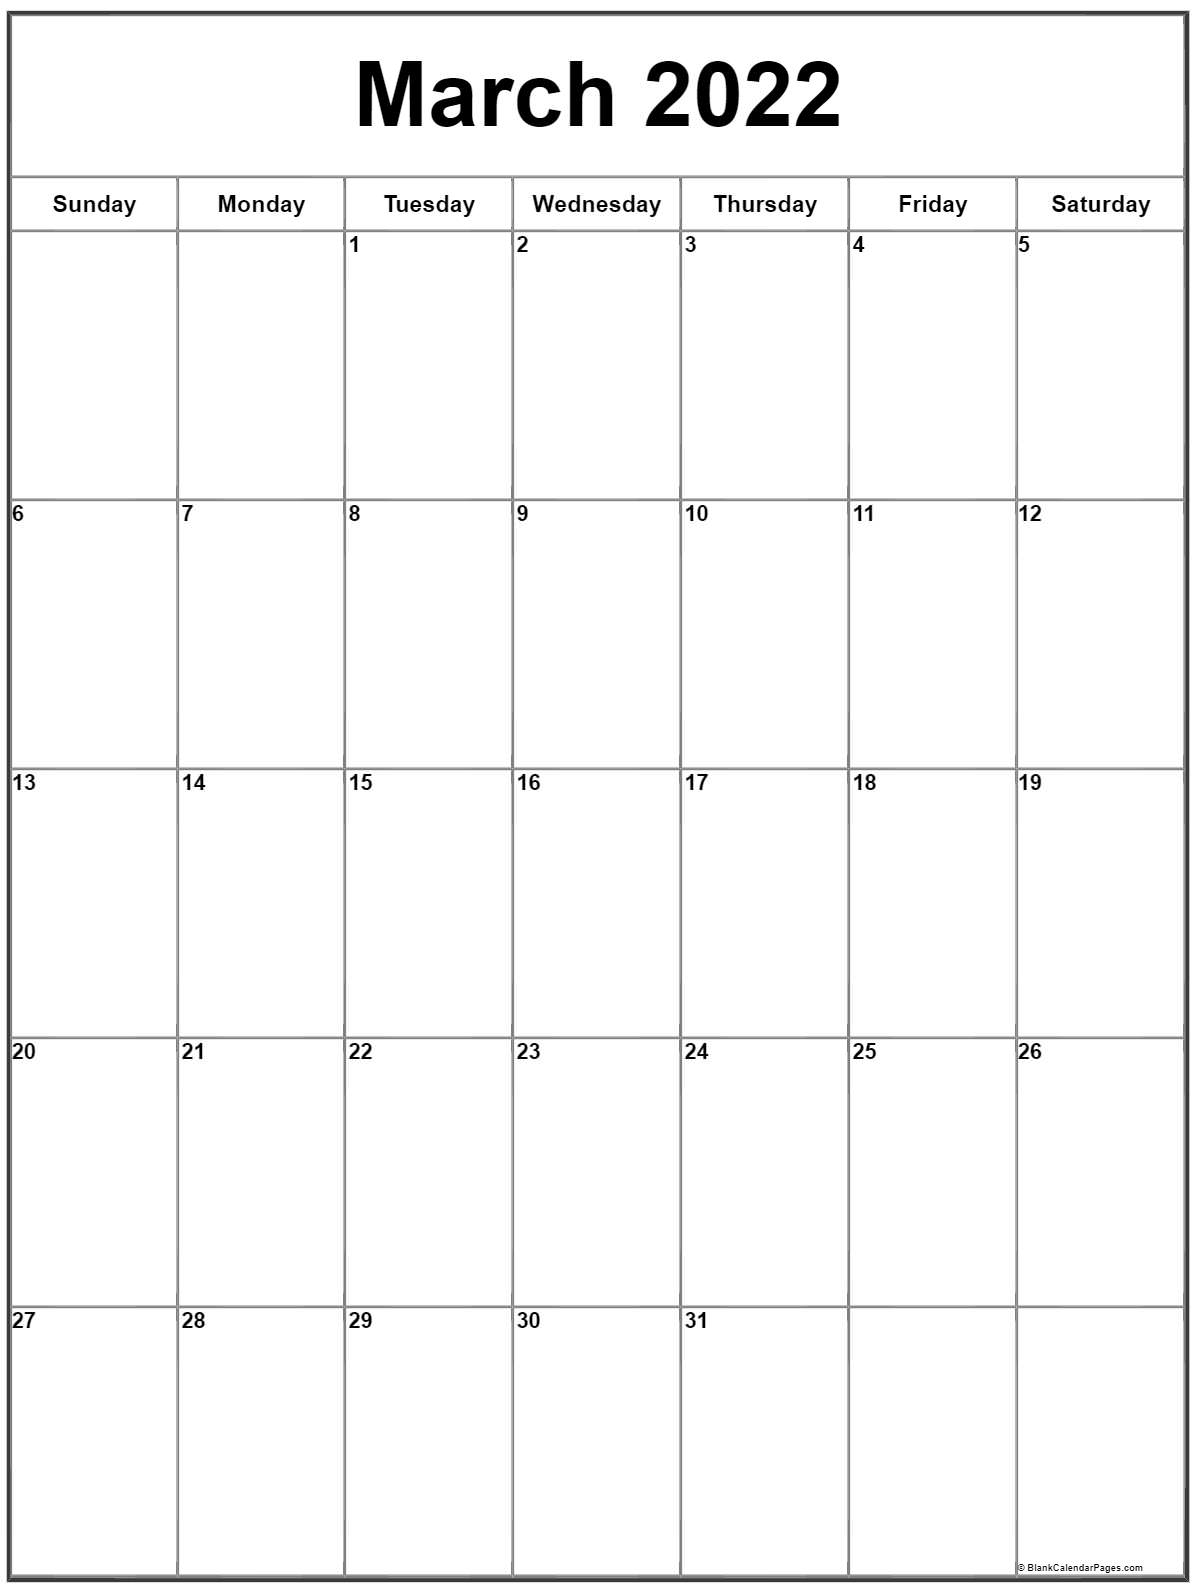 March 2022 Monday calendar. Monday to Sunday